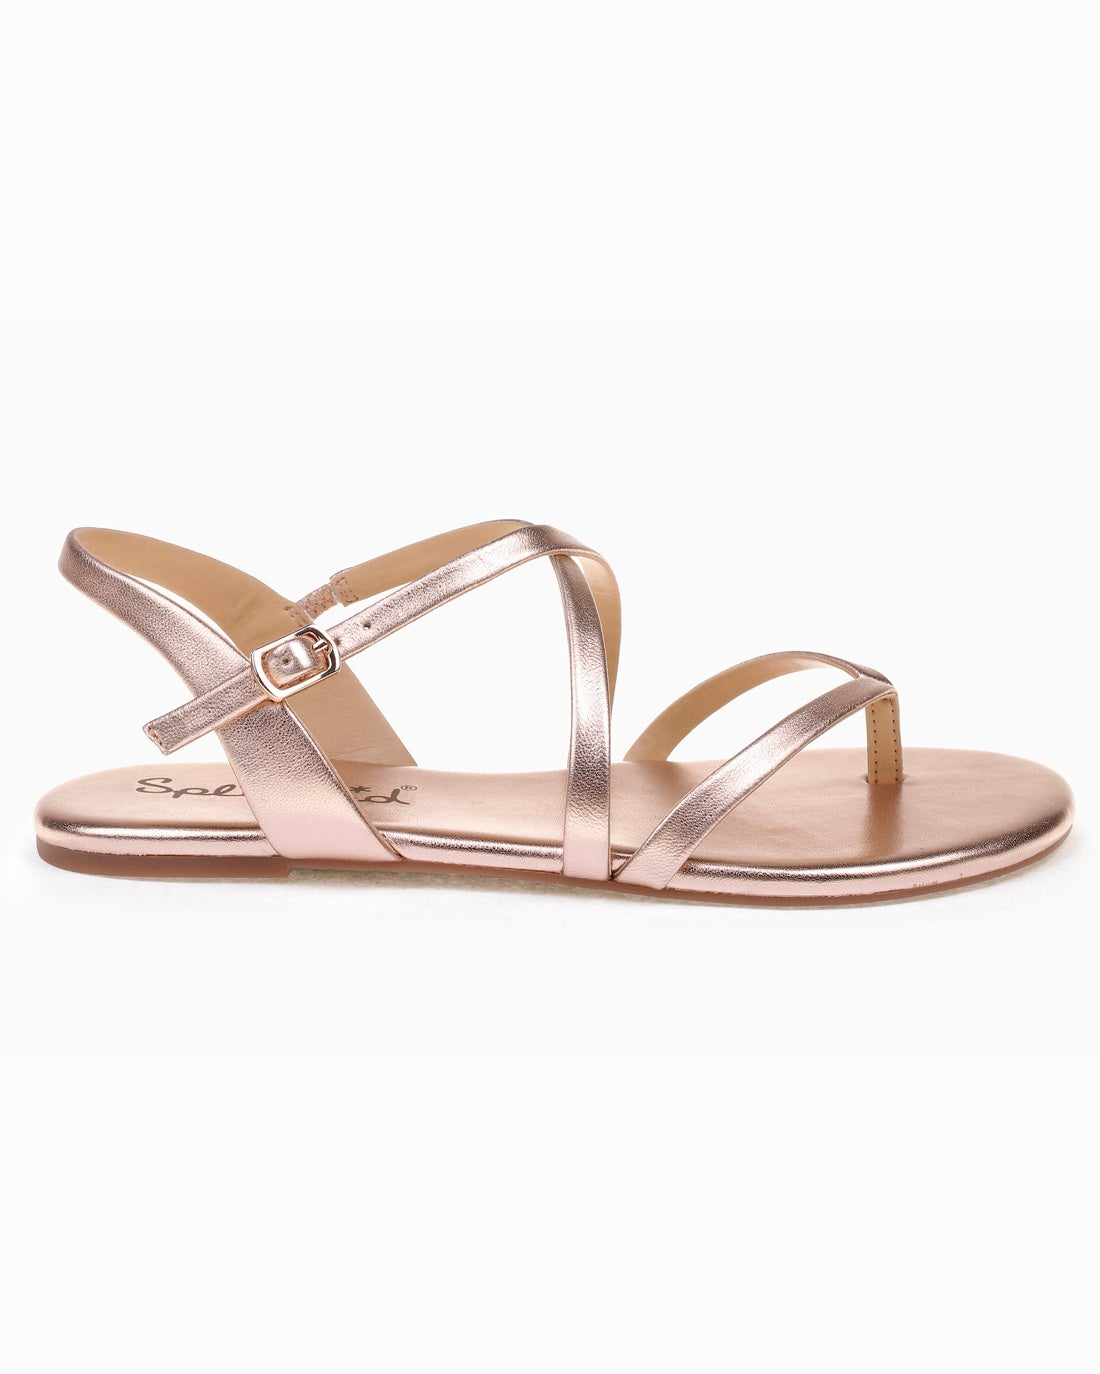 Sfll1258 rose gold 1